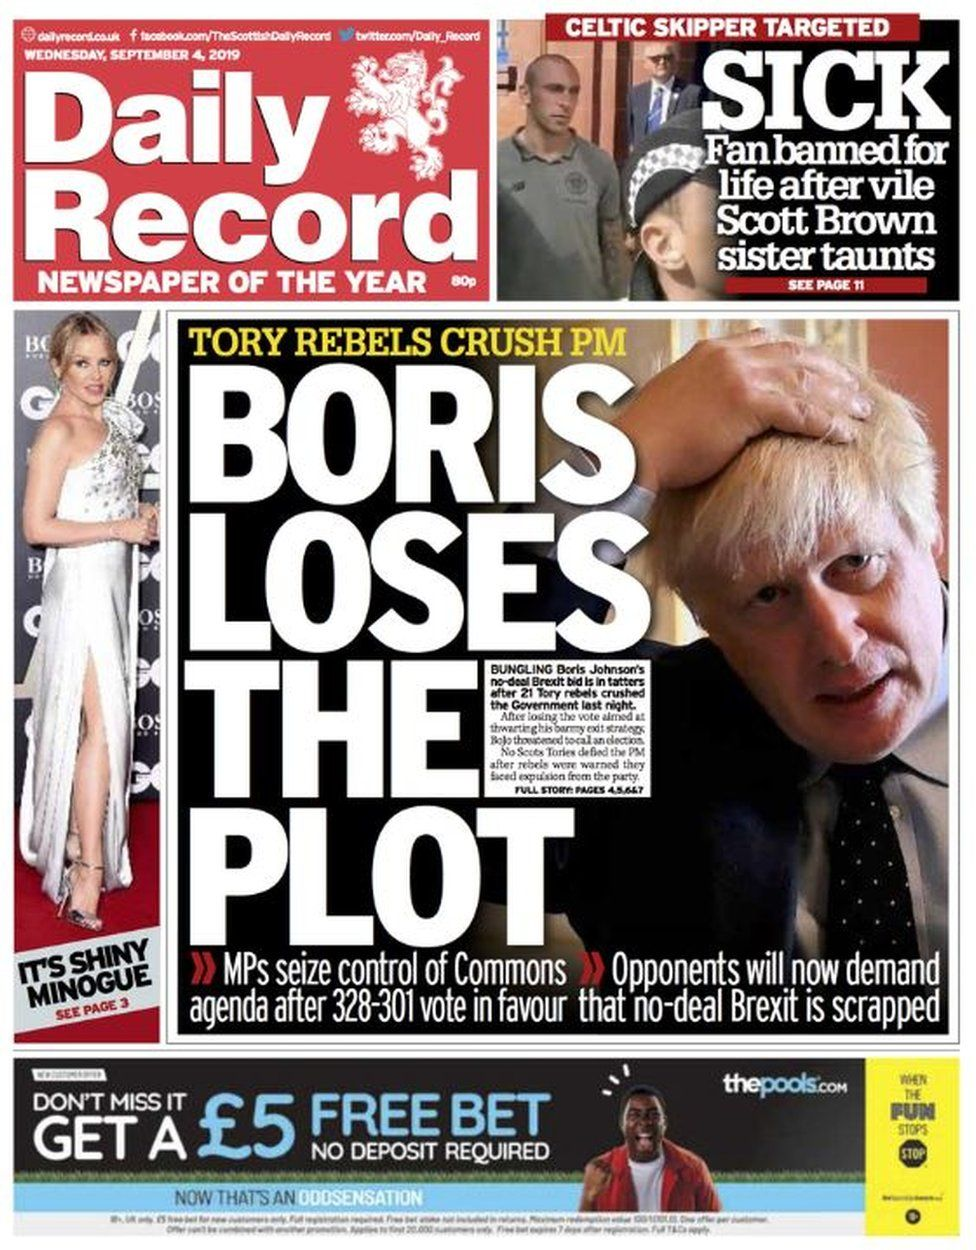 Scotland's papers: Johnson loses 'vote', 'control' and 'the